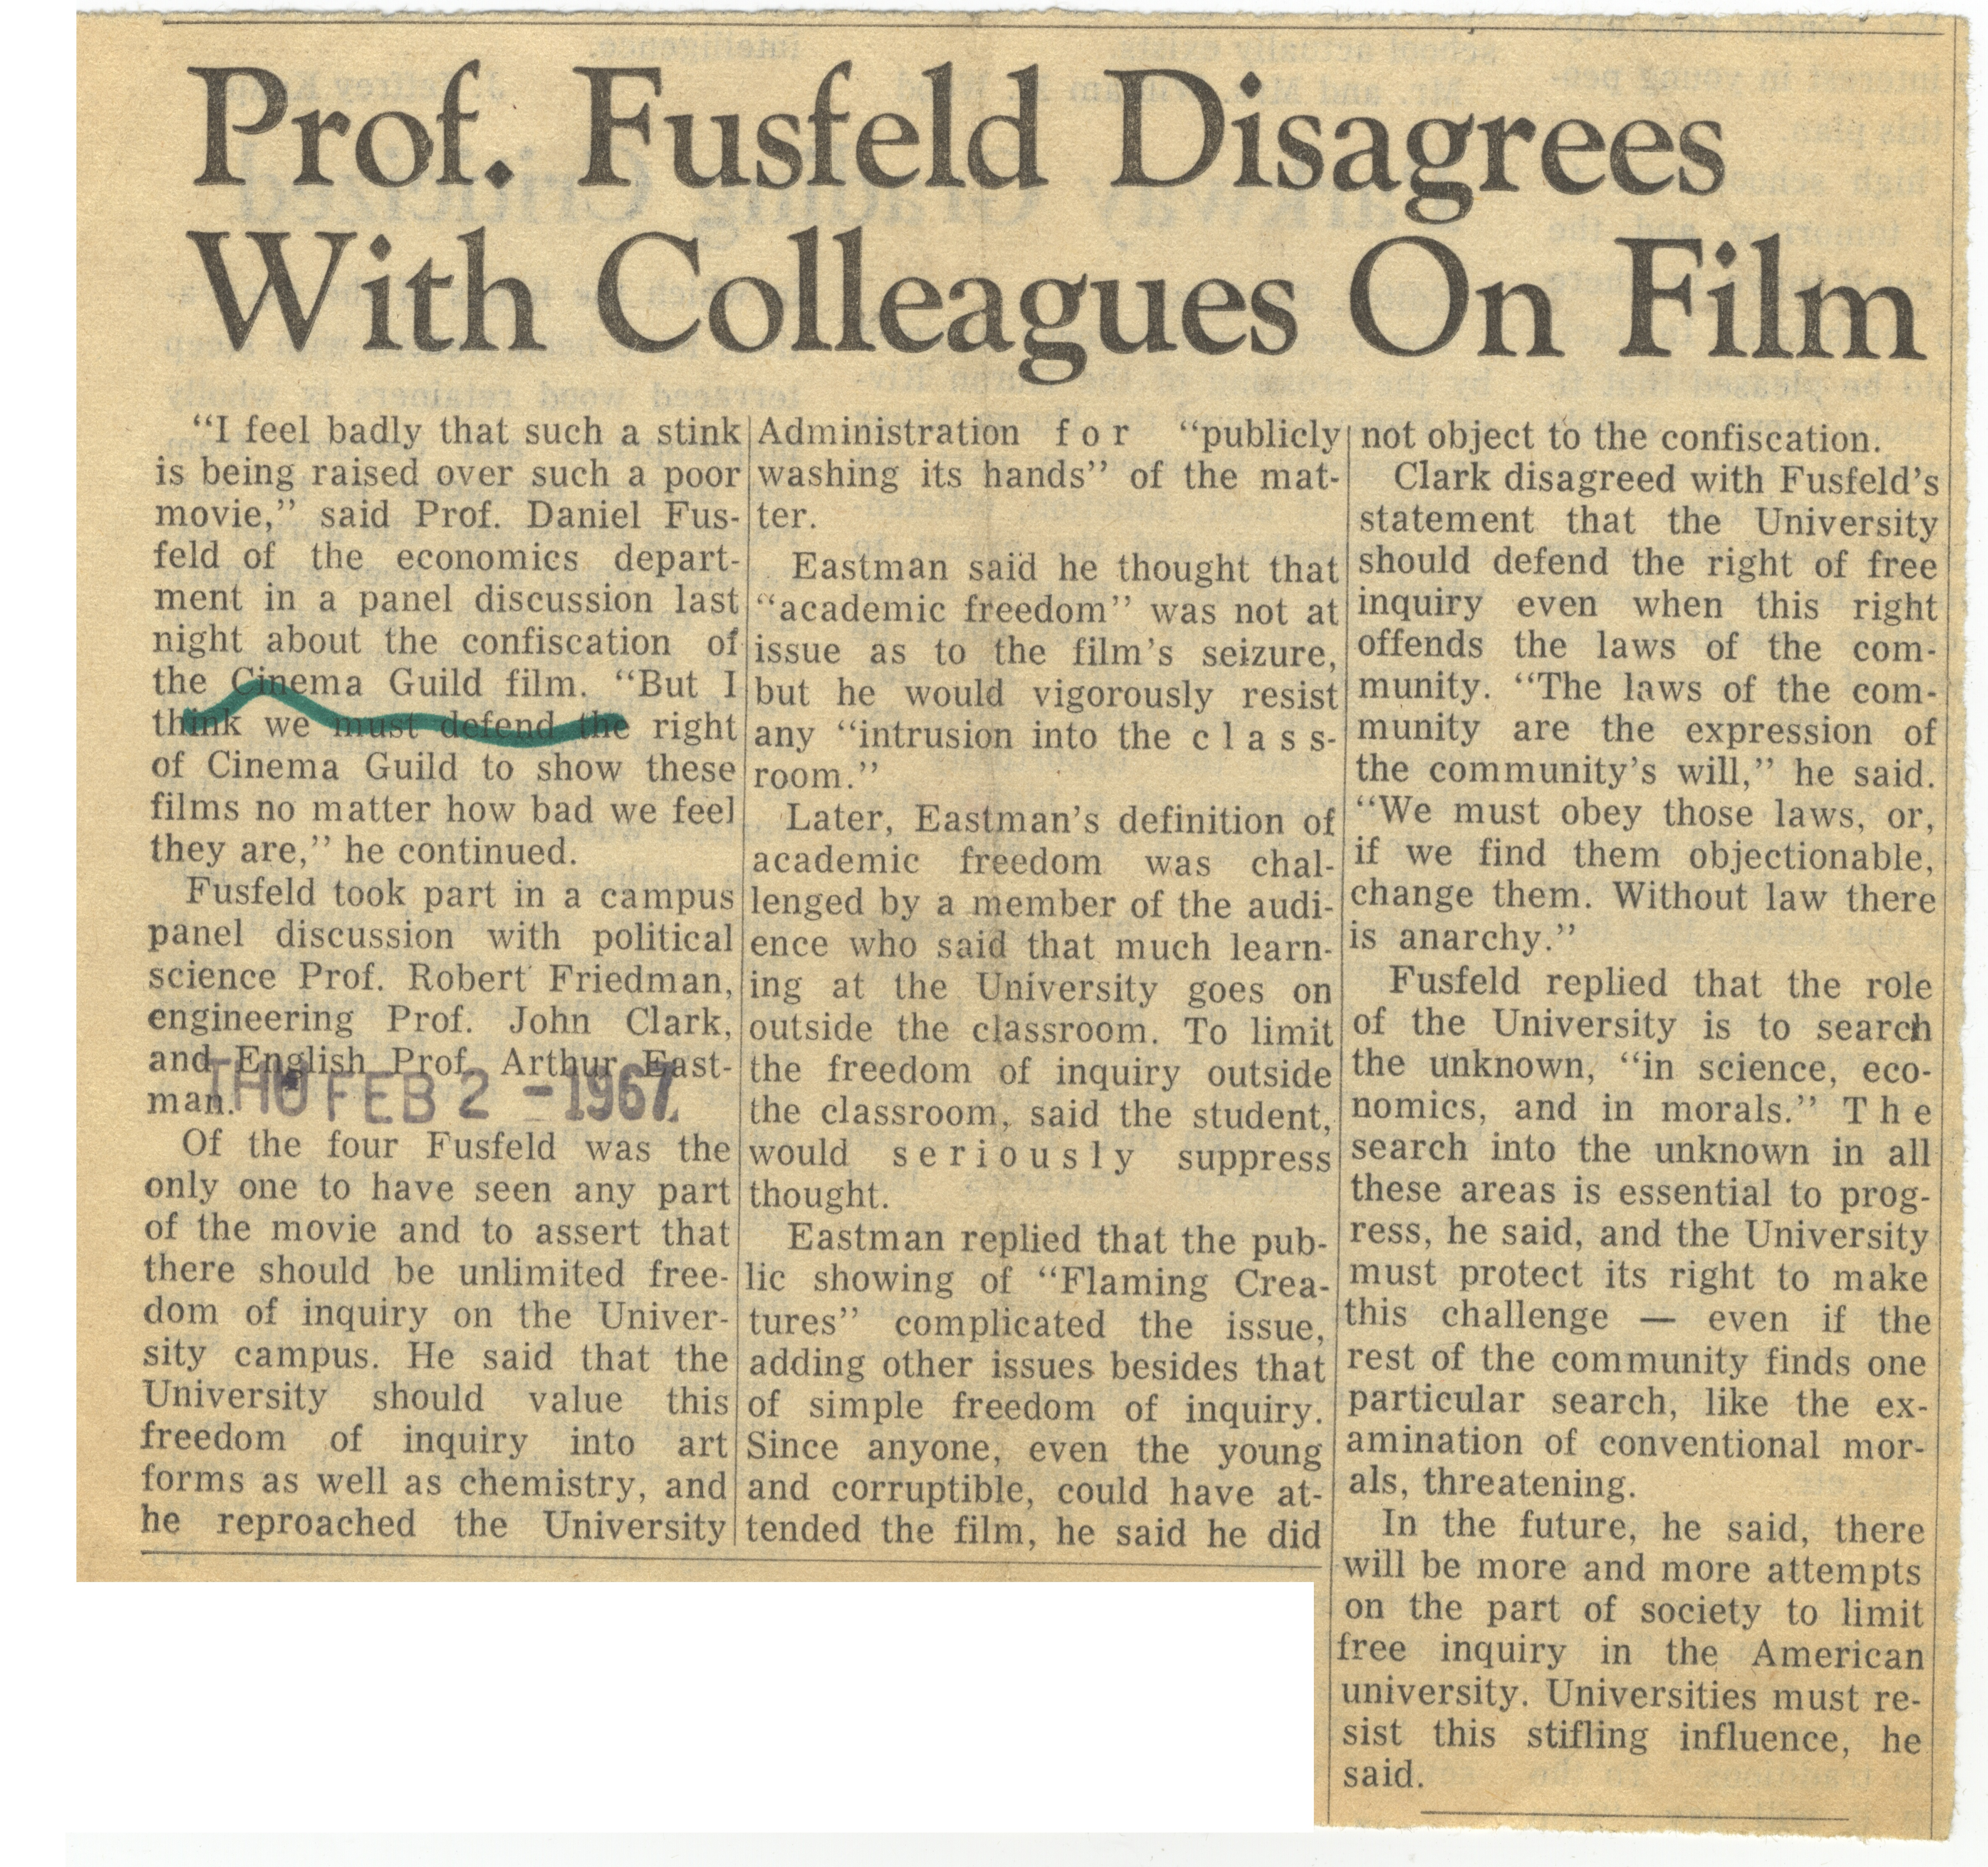 Prof. Fusfeld Disagrees With Colleagues On Film image